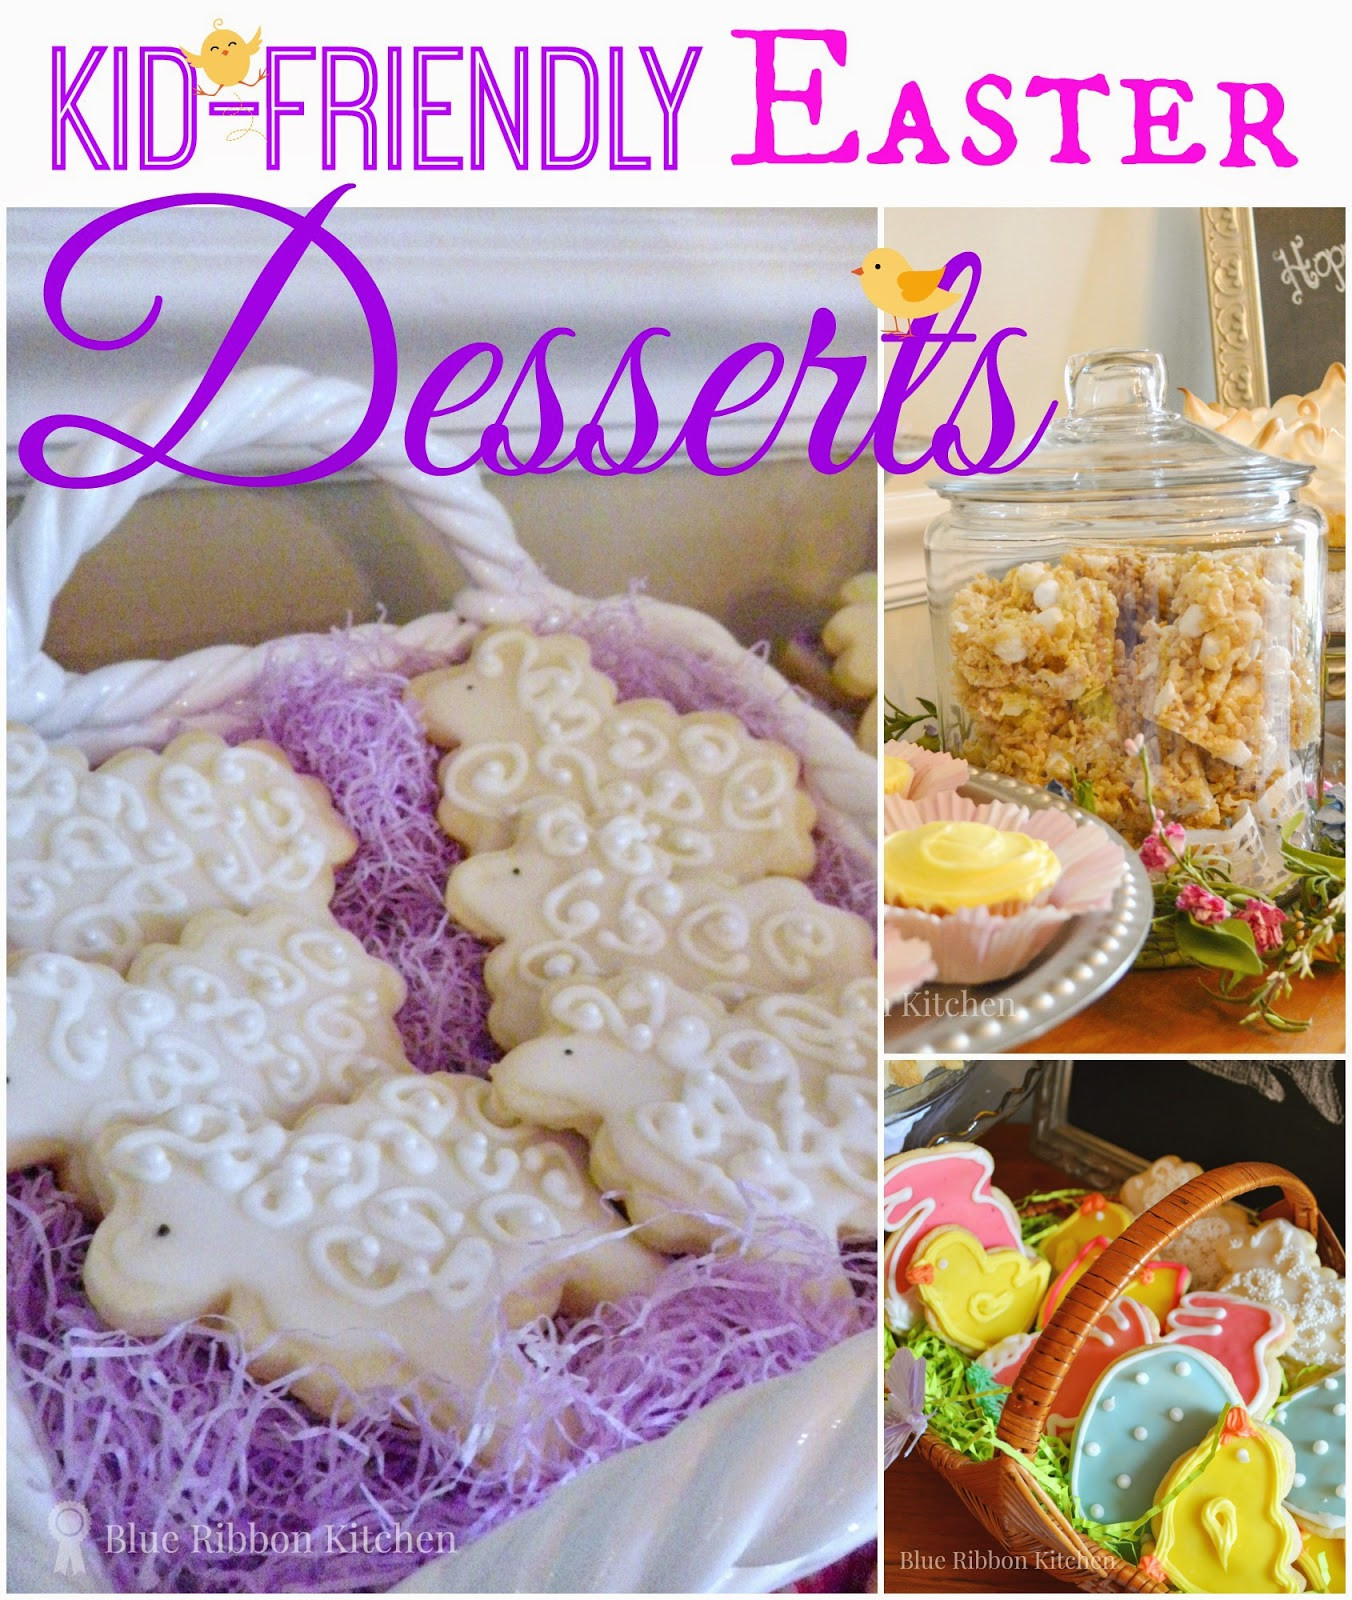 Kid Friendly Easter Desserts  Blue Ribbon Kitchen Easter Dessert Ideas